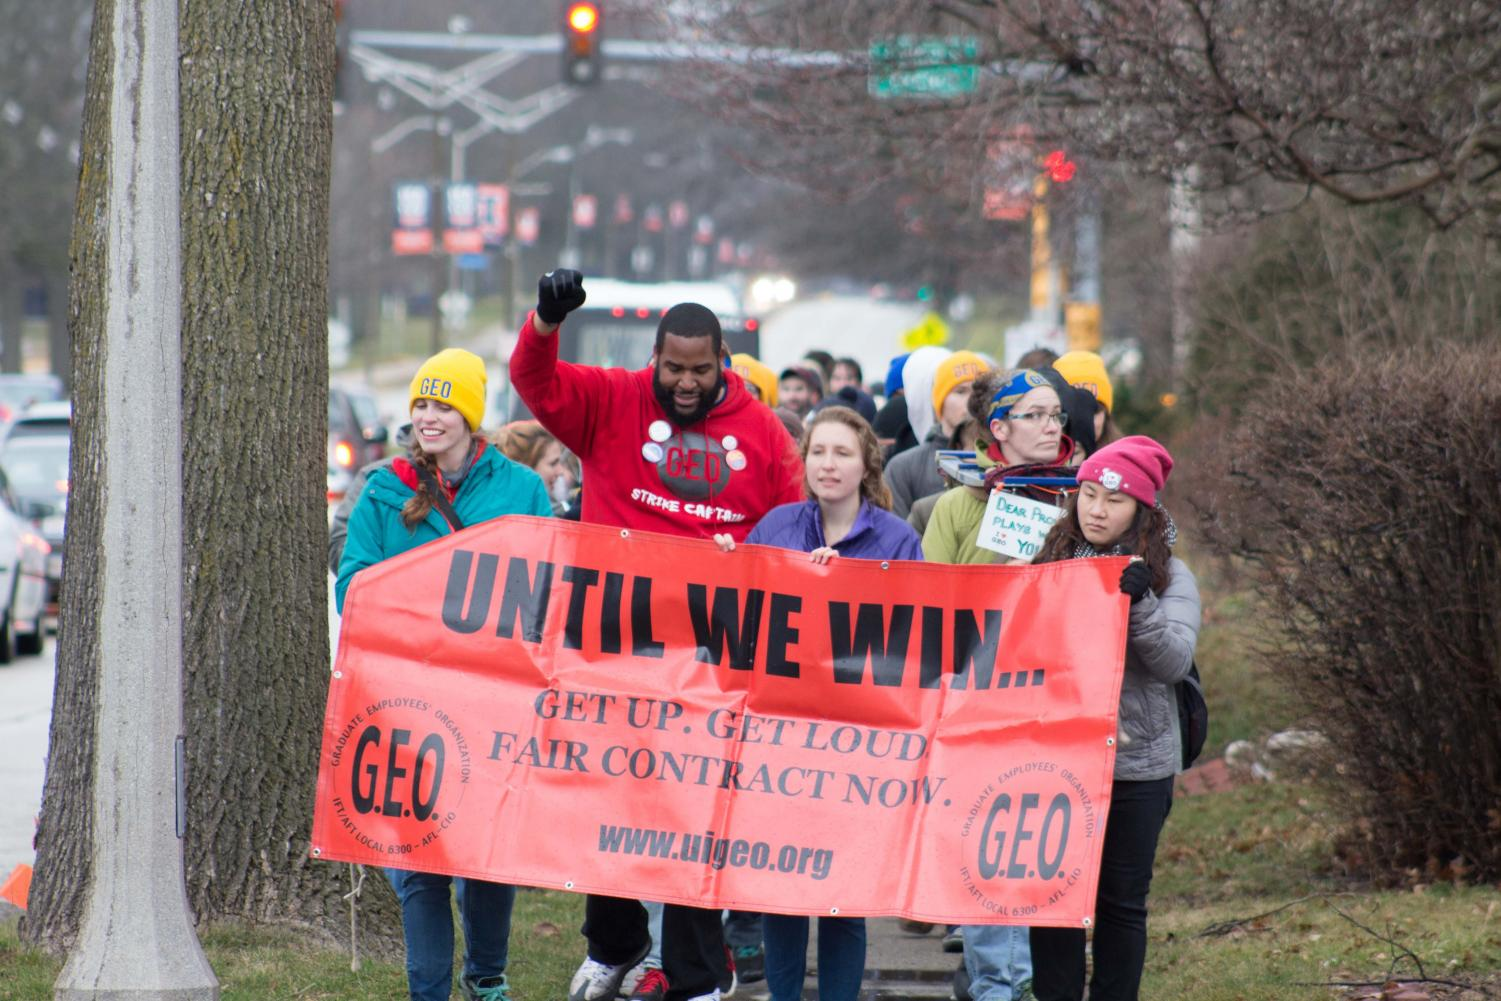 Members of the Graduate Employees' Organization march toward University President Timothy Killeen's house along Florida Avenue on March 6. An agreement has been made between the GEO and University administration that grants many of the GEO's demands for a new contract.